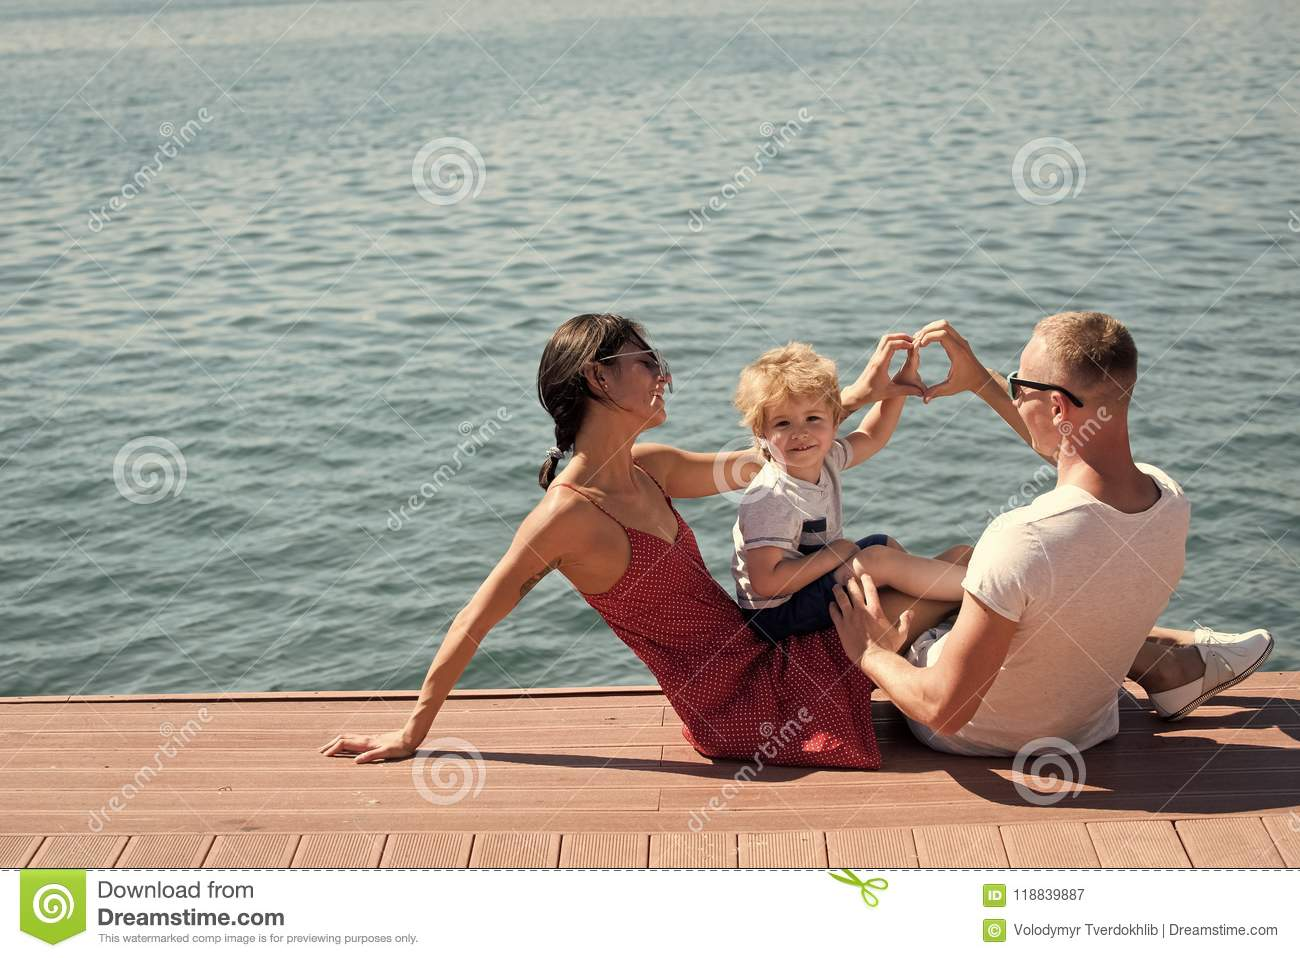 Happy family. Mother and father making heart or love gesture with hands near their child. Happy family spend time